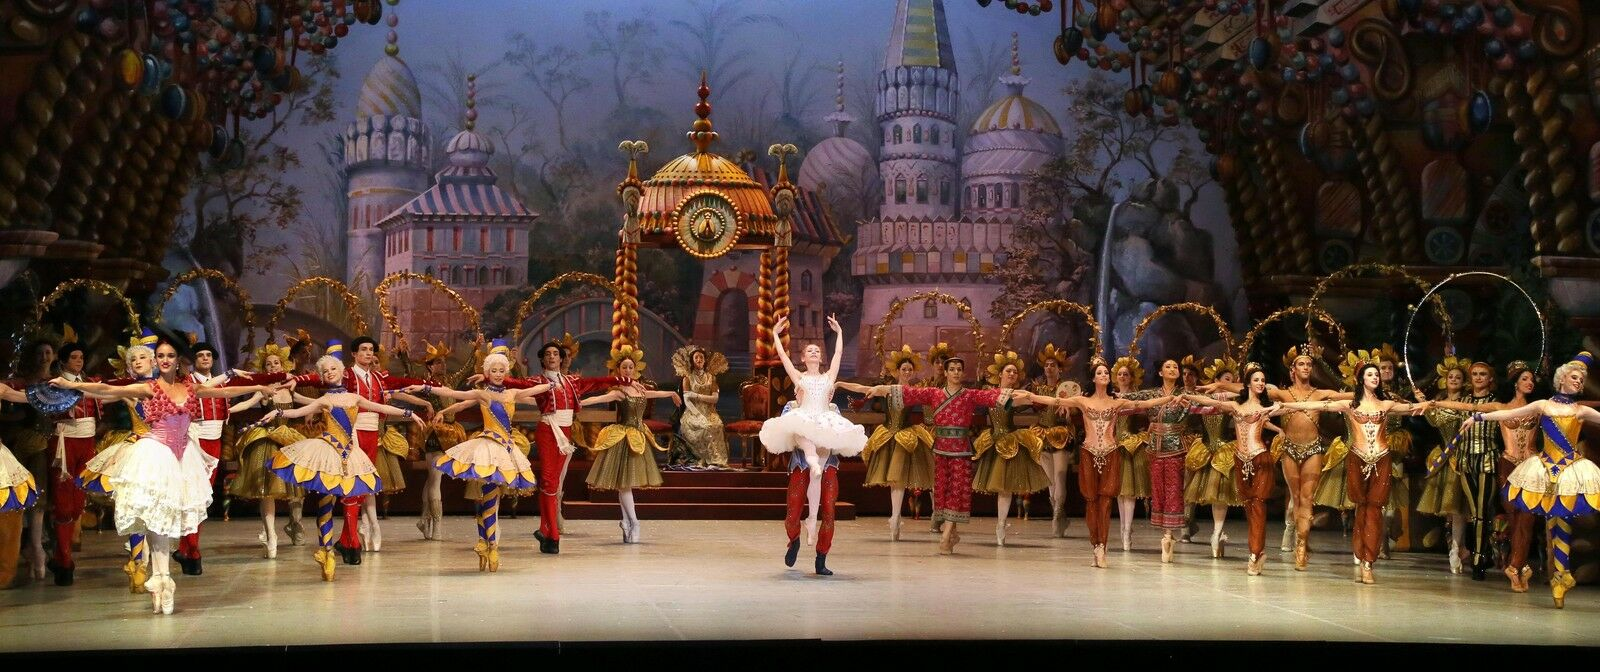 The Nutcracker Boston